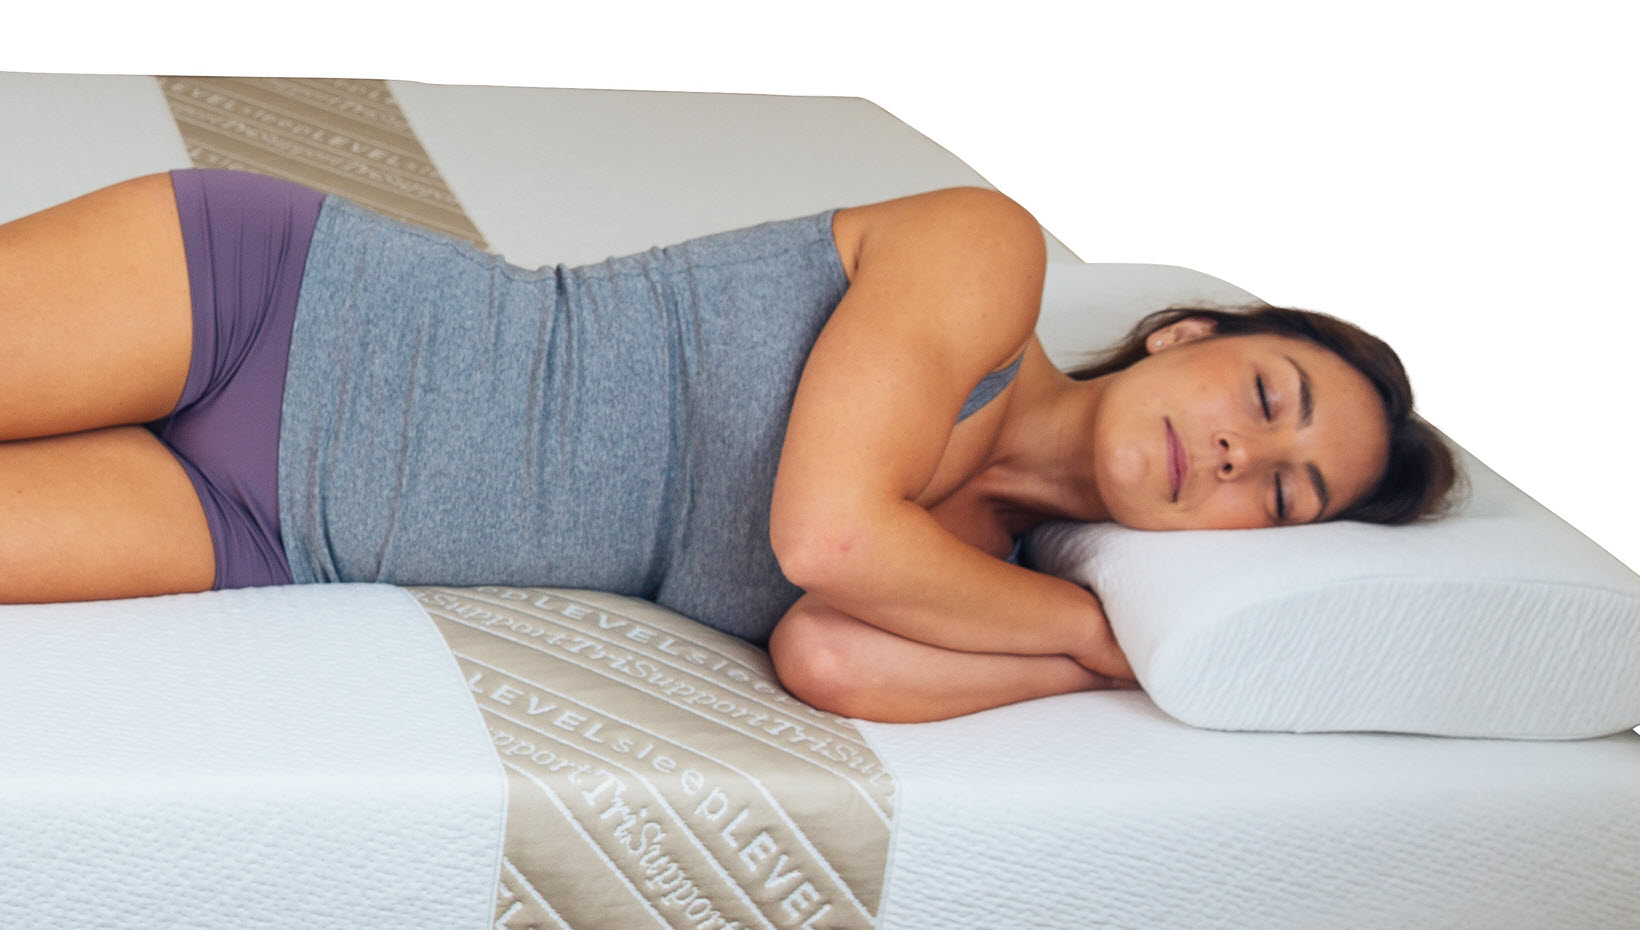 The TriSupport and TriSupport Luxe mattresses and topper feature a soft shoulder zone that absorbs your shoulder's weight while the complementary lumbar and hip zones keep your body aligned.